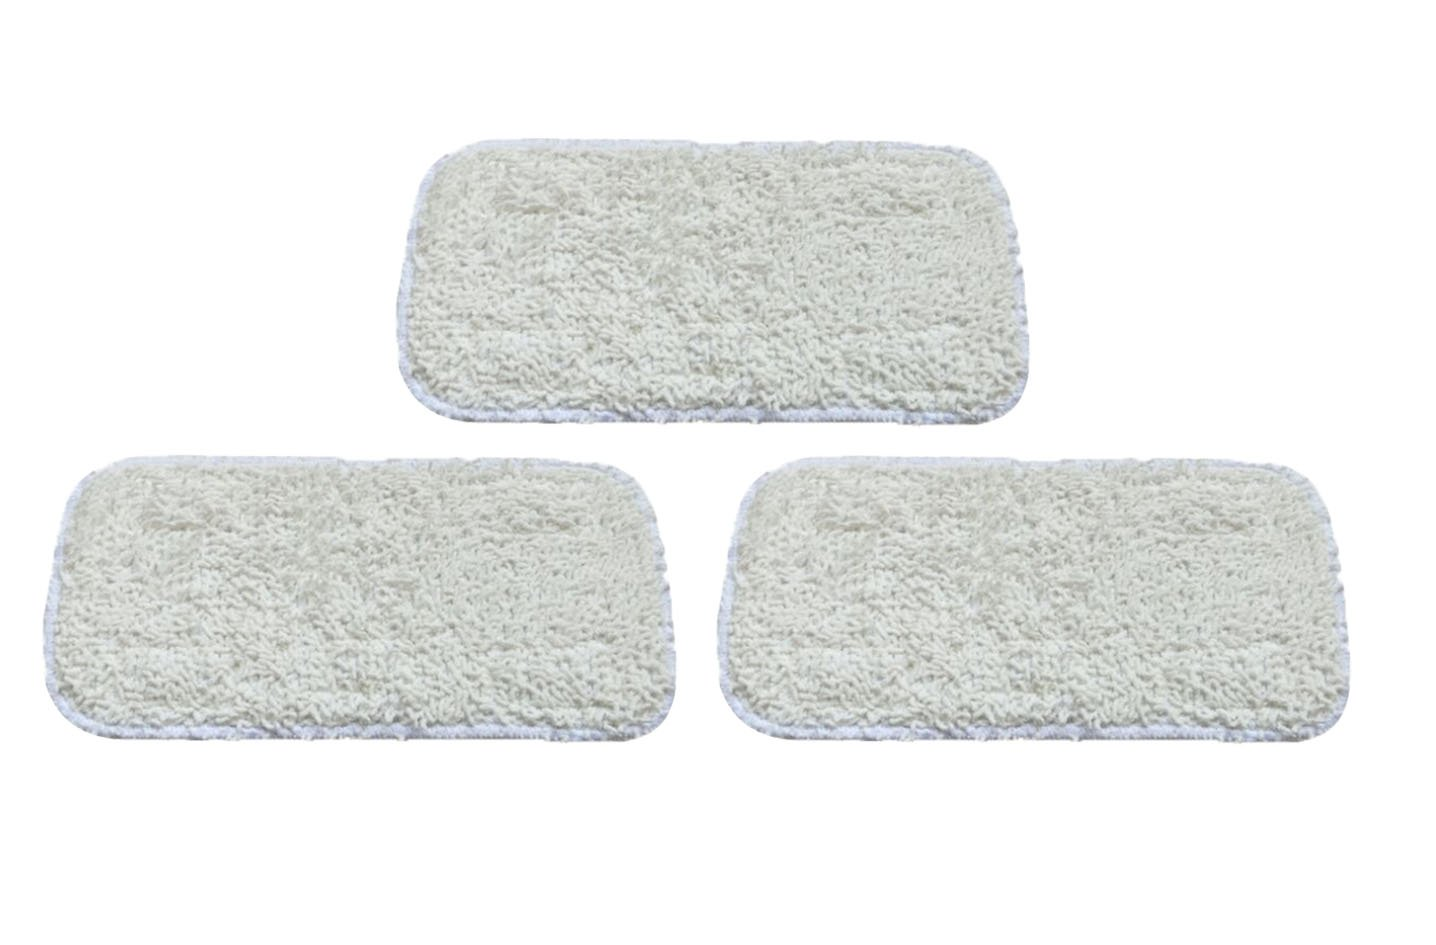 Surrgound Microfiber Steam Mop Pads Fit for Sienna Vibe, Vortex, Sienna aqua series, Sienna Flex Steam Mops Replace Part# SSM-3003, 3pcs SISSM300303